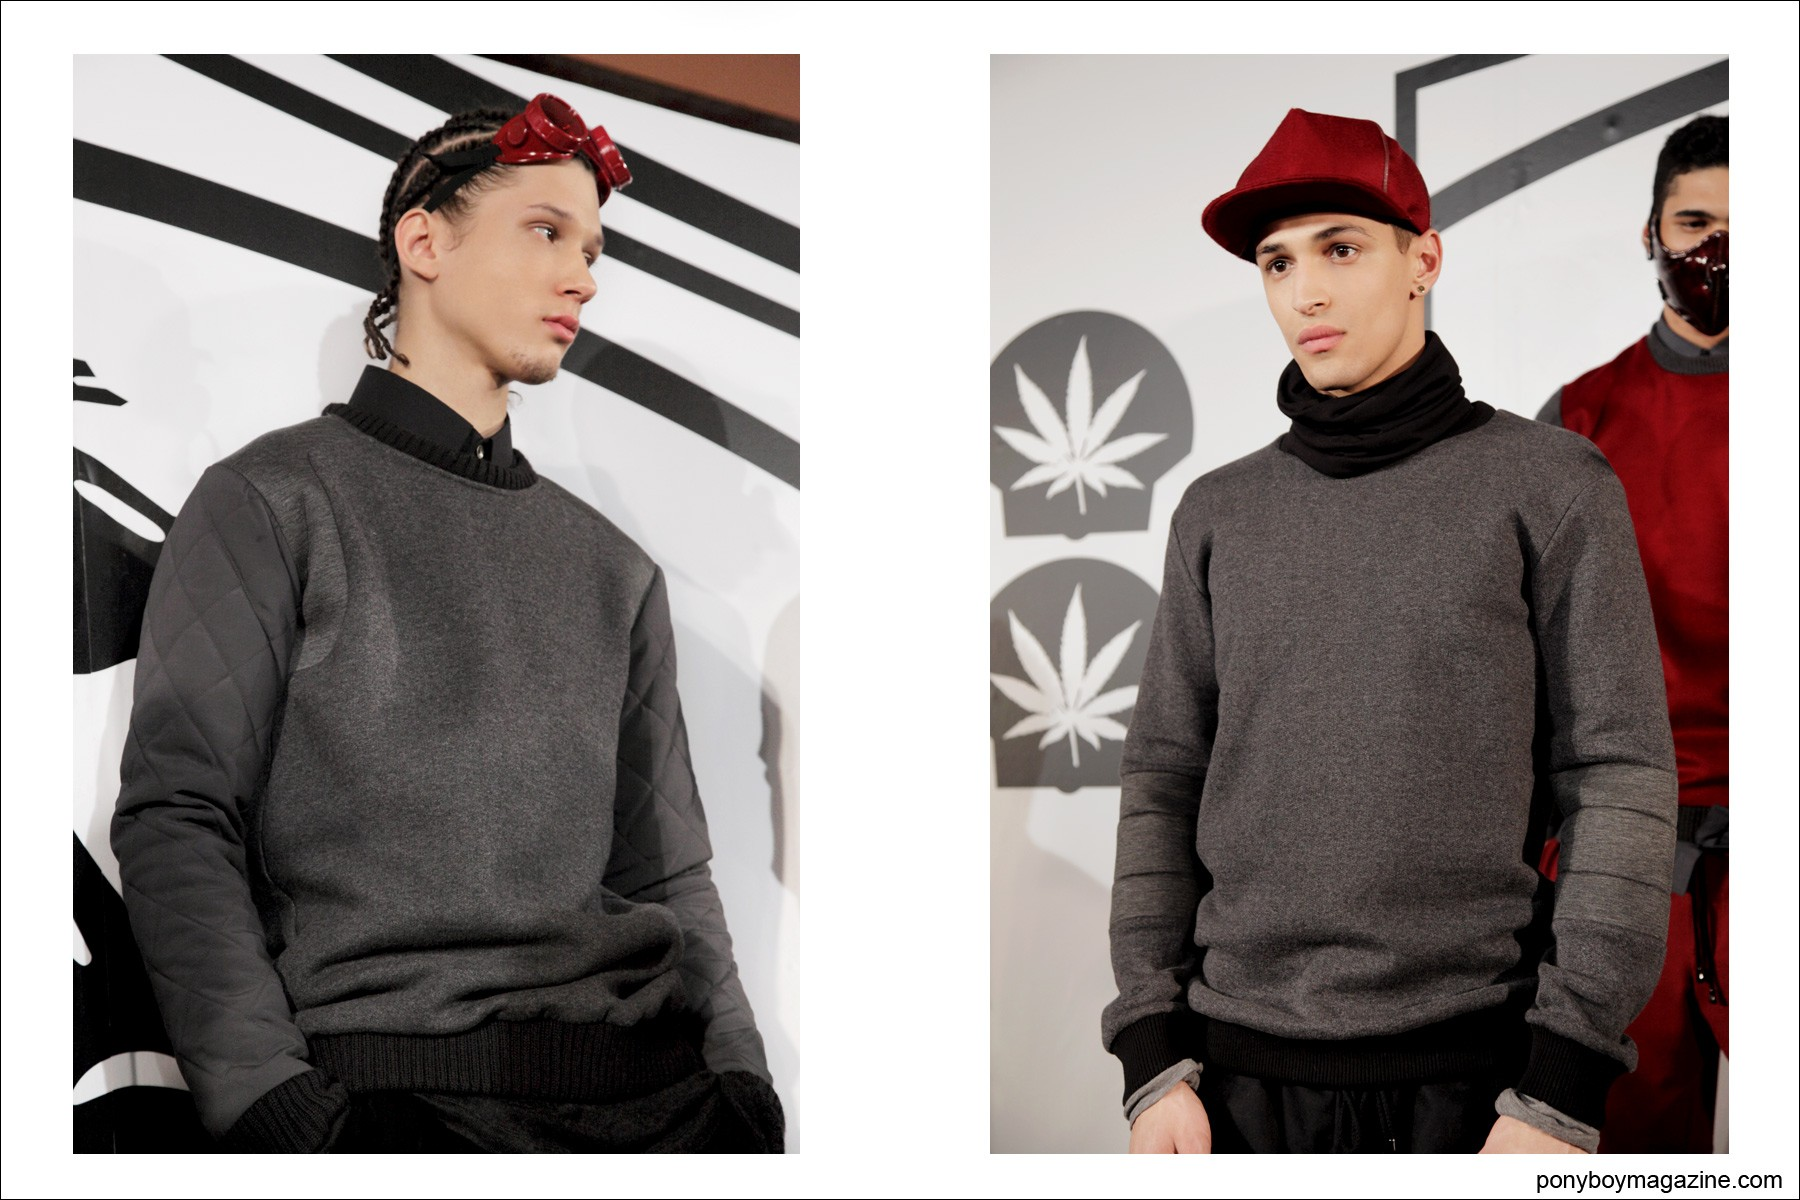 Rochambeau A/W 2014 men's collection, photographed by Alexander Thompson at Milk Studios in NYC, for Ponyboy Magazine.